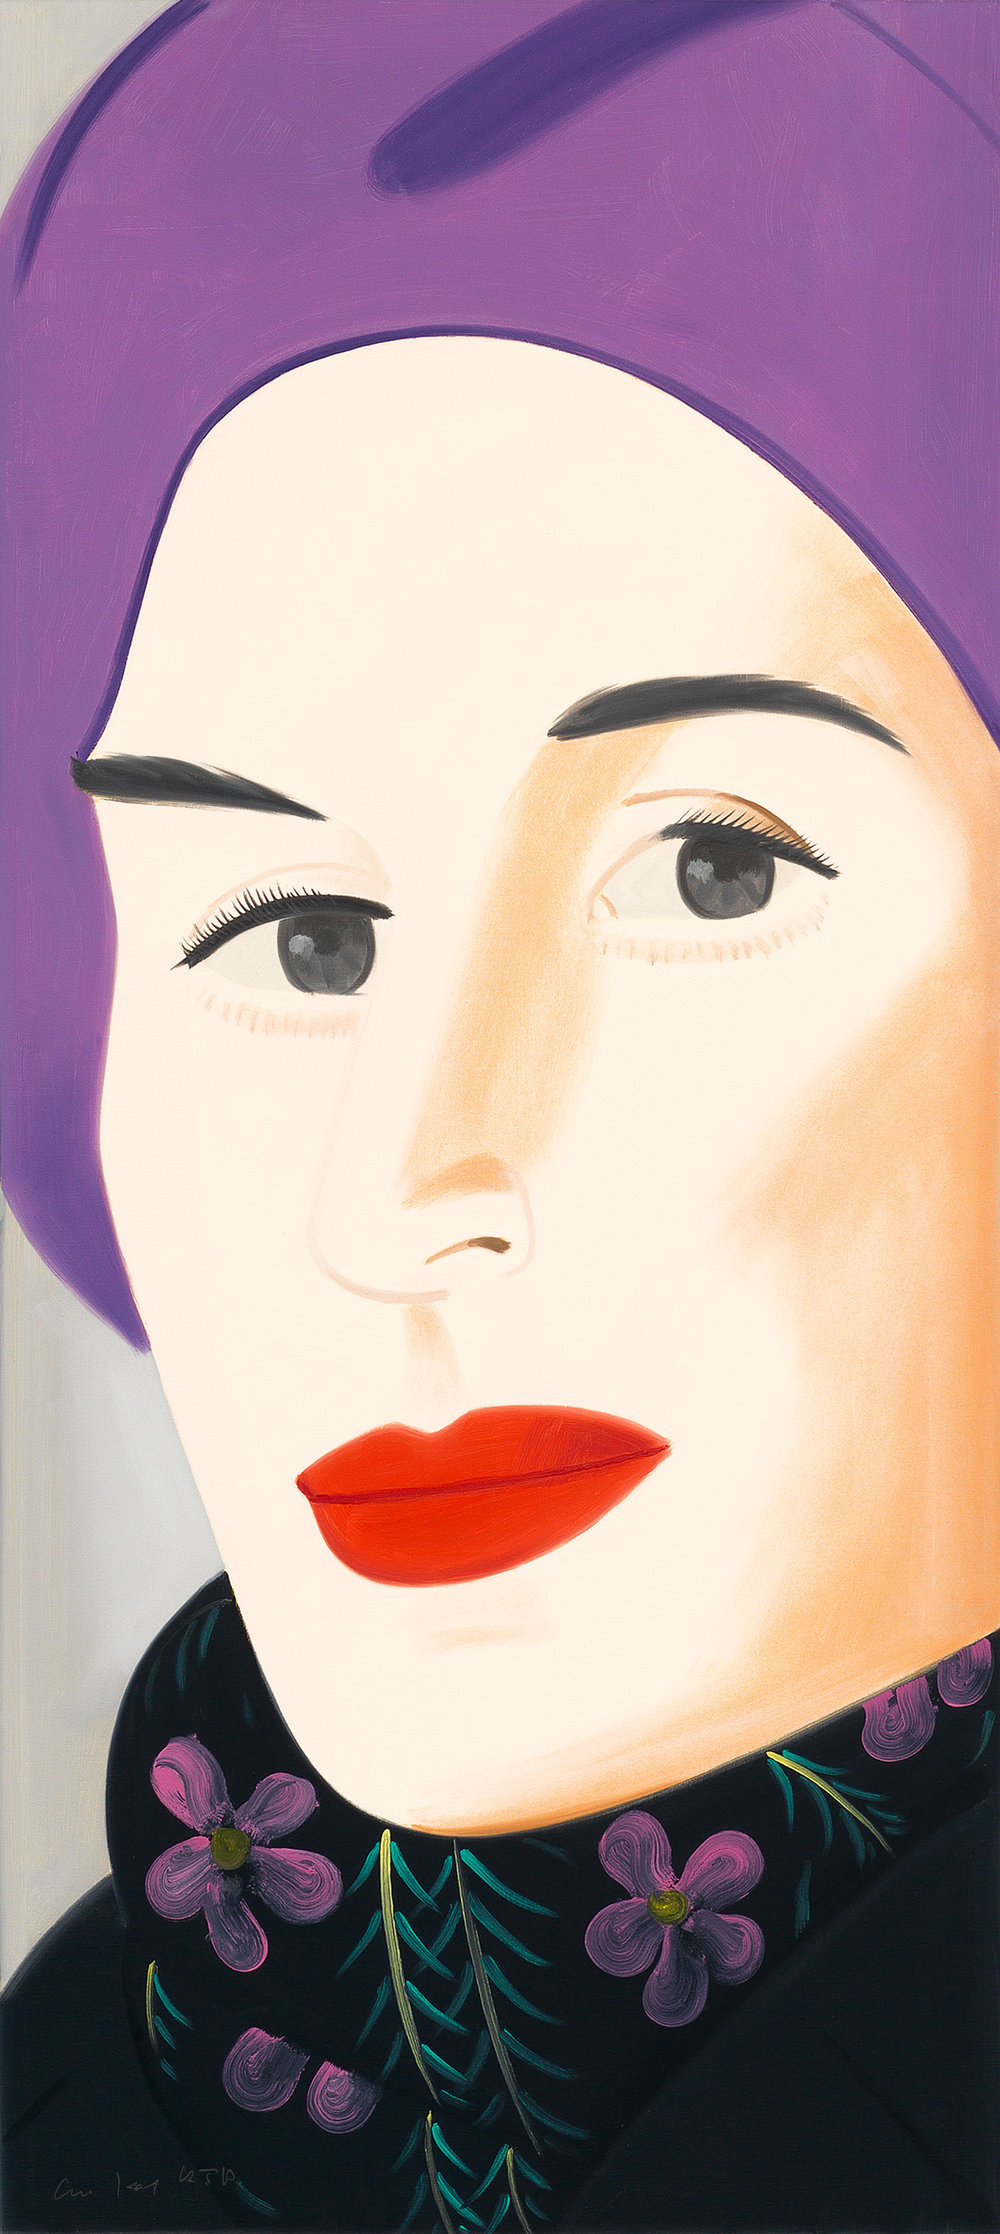 "Alex Katz  Purple Hat , 2017 archival pigment inks on Crane Museo Max 365 gsm fine art paper                         Normal     0                     false     false     false         EN-US     X-NONE     X-NONE                                                                                                                                                                                                                                                                                                                                                                                                                                                                                                                                                                                                                                                                                                                                                                                                                                                                                                                                                                                                                                                                                                                                                                                                                                                                                                                                                                                                                                                                                                                                                                                                                                                                                                     /* Style Definitions */  table.MsoNormalTable 	{mso-style-name:""Table Normal""; 	mso-tstyle-rowband-size:0; 	mso-tstyle-colband-size:0; 	mso-style-noshow:yes; 	mso-style-priority:99; 	mso-style-parent:""""; 	mso-padding-alt:0in 5.4pt 0in 5.4pt; 	mso-para-margin:0in; 	mso-para-margin-bottom:.0001pt; 	mso-pagination:widow-orphan; 	font-size:12.0pt; 	font-family:""Calibri"",sans-serif; 	mso-ascii-font-family:Calibri; 	mso-ascii-theme-font:minor-latin; 	mso-hansi-font-family:Calibri; 	mso-hansi-theme-font:minor-latin; 	mso-bidi-font-family:""Times New Roman""; 	mso-bidi-theme-font:minor-bidi;}     46 x 21 in ."